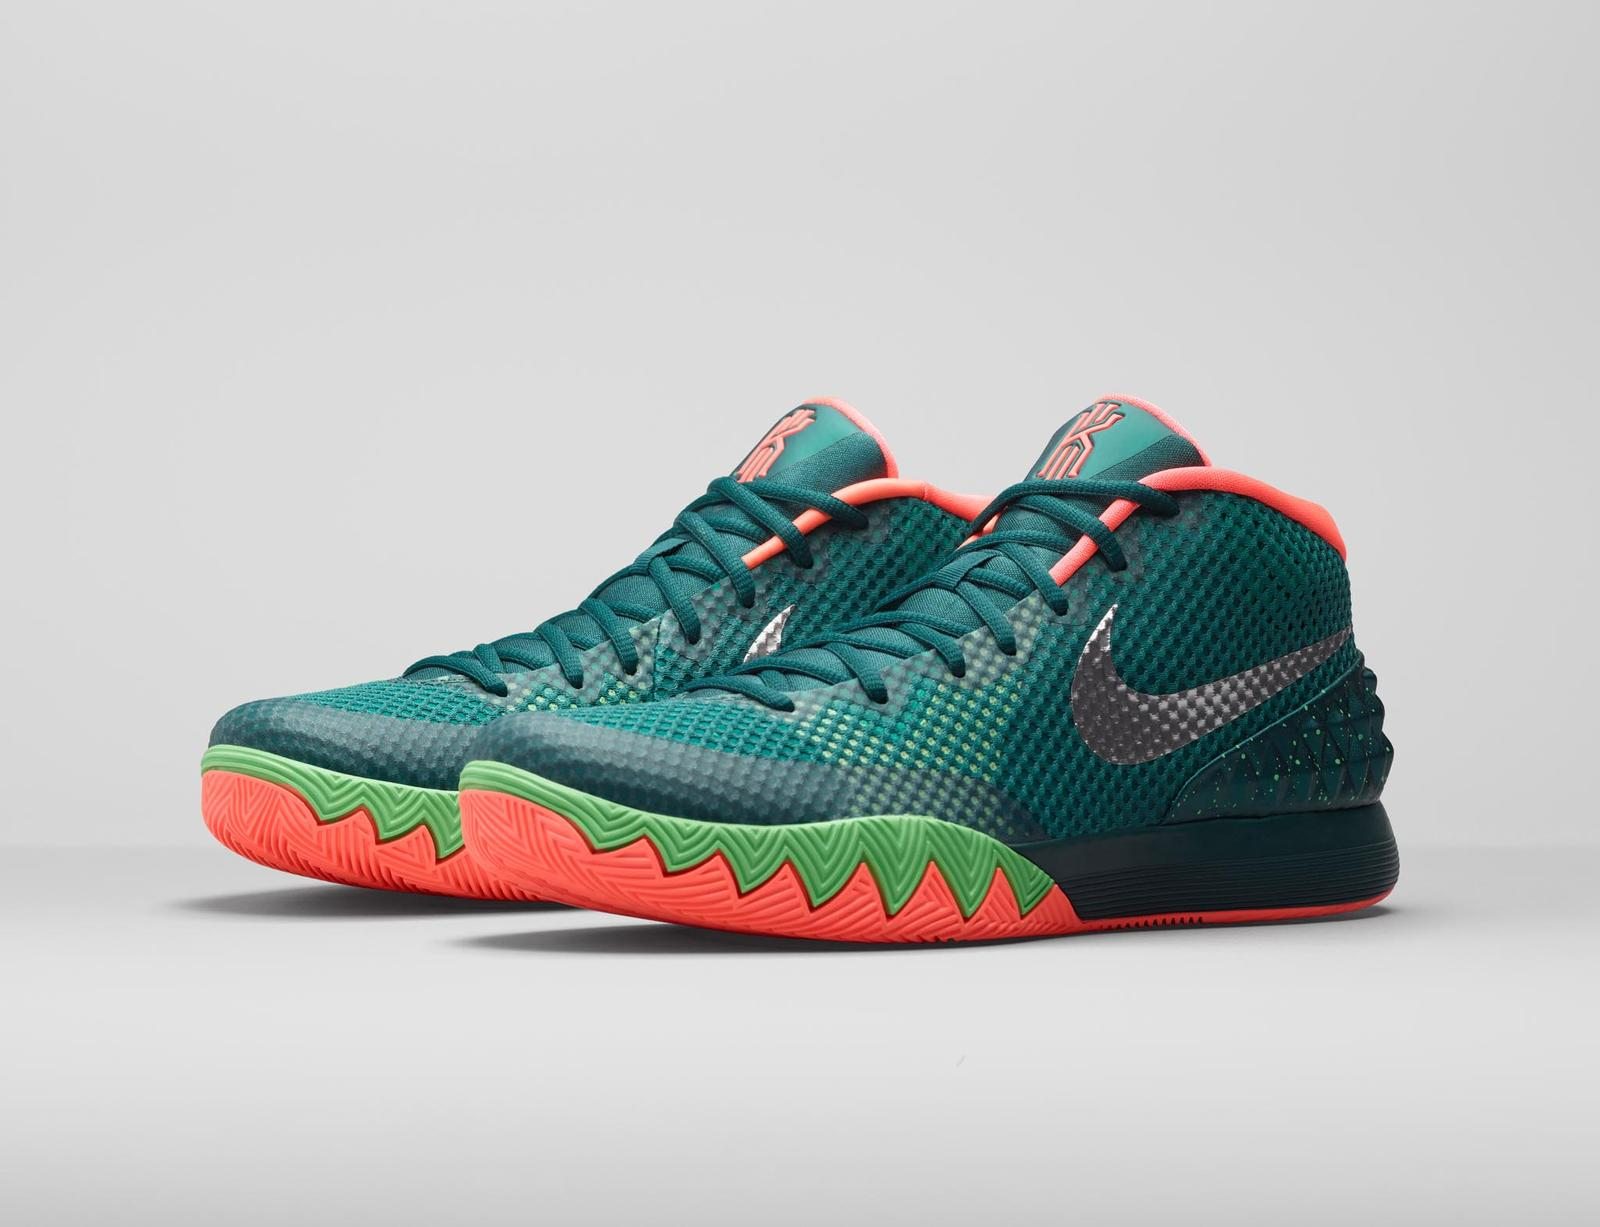 kyrie 1 flytrap basketball shoe captures deceptive